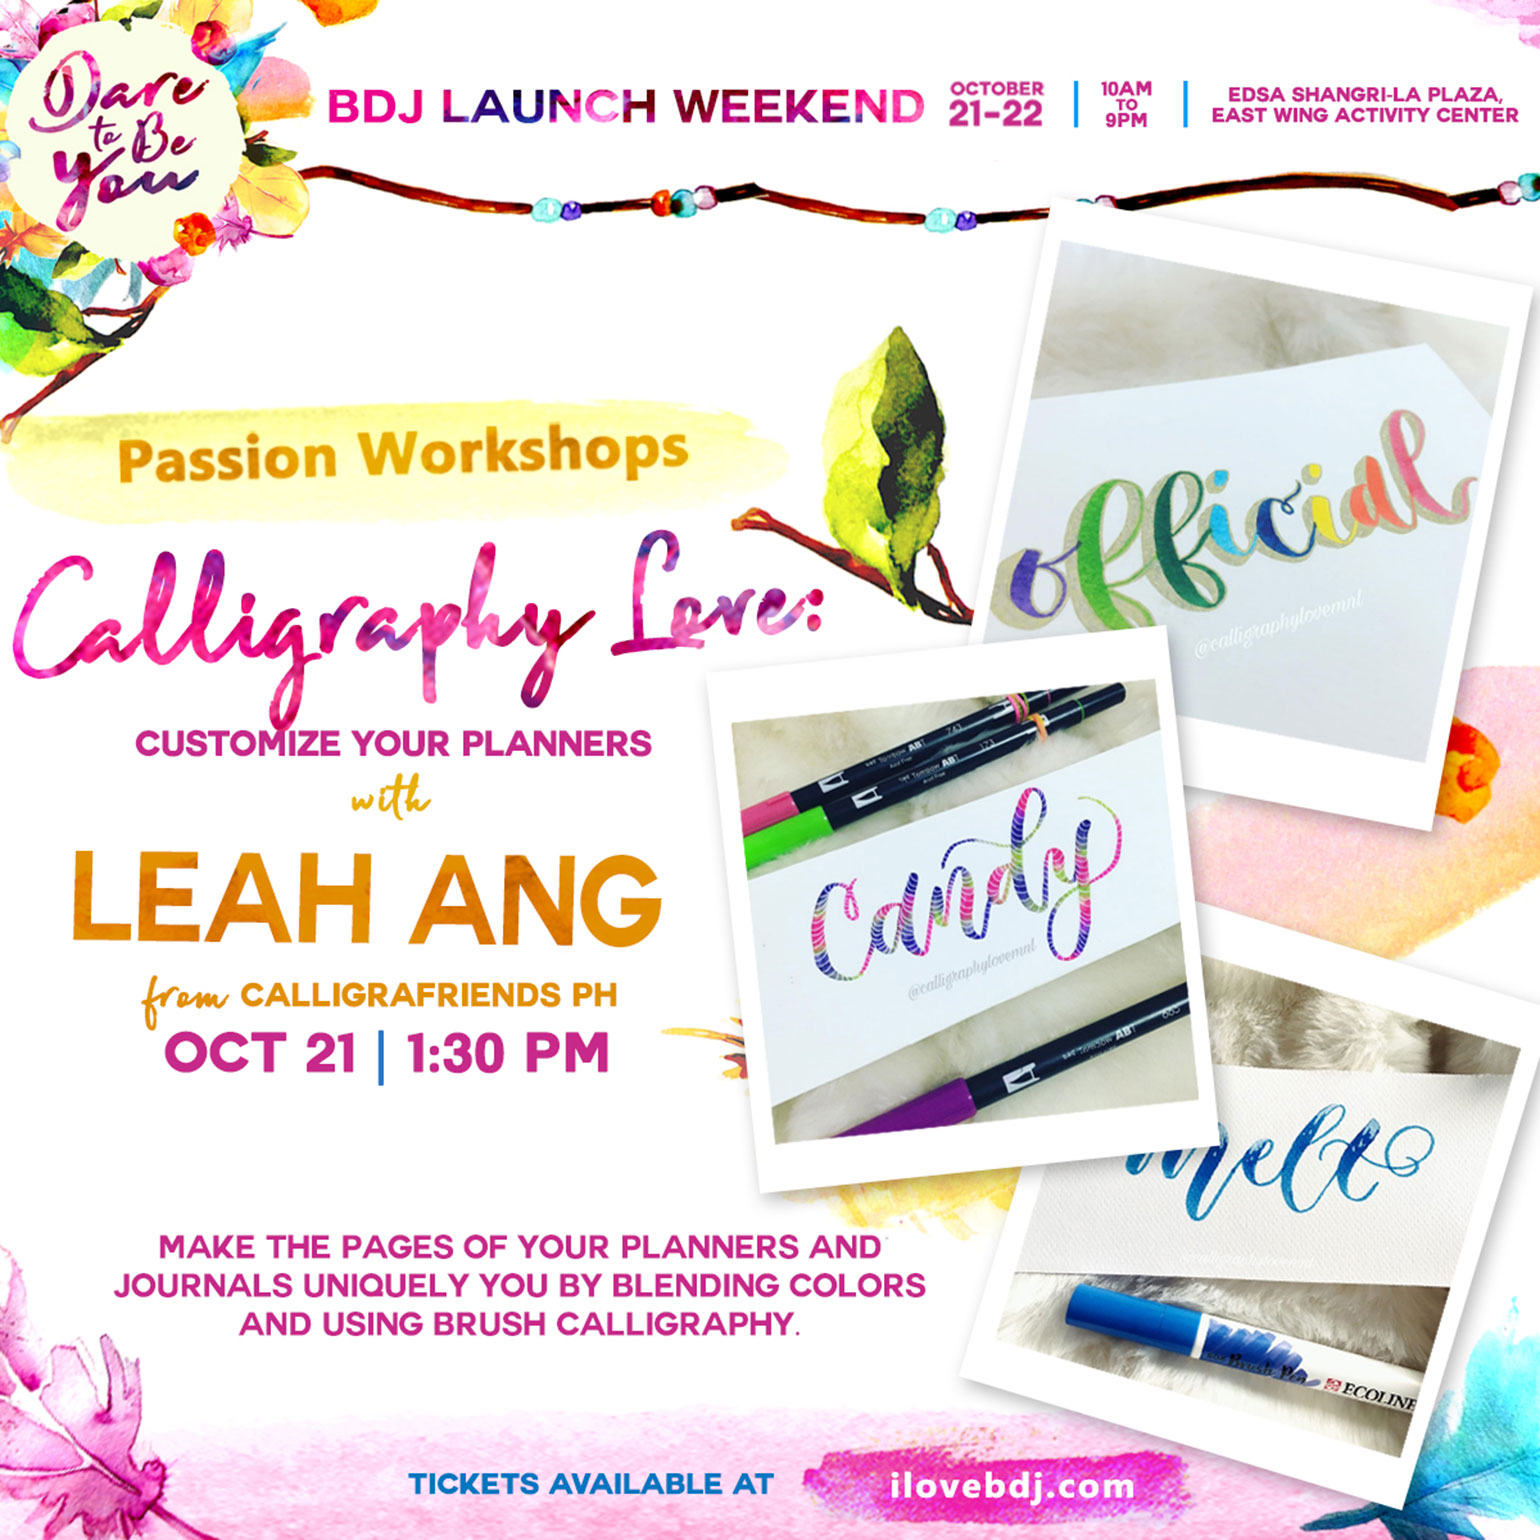 BDJ-FAIR-2018_PLANNER-LAUNCH-WEEKEND_PASSION-WORKSHOP_CALLIGRAPHY-WORKSHOP_Leah-Ang